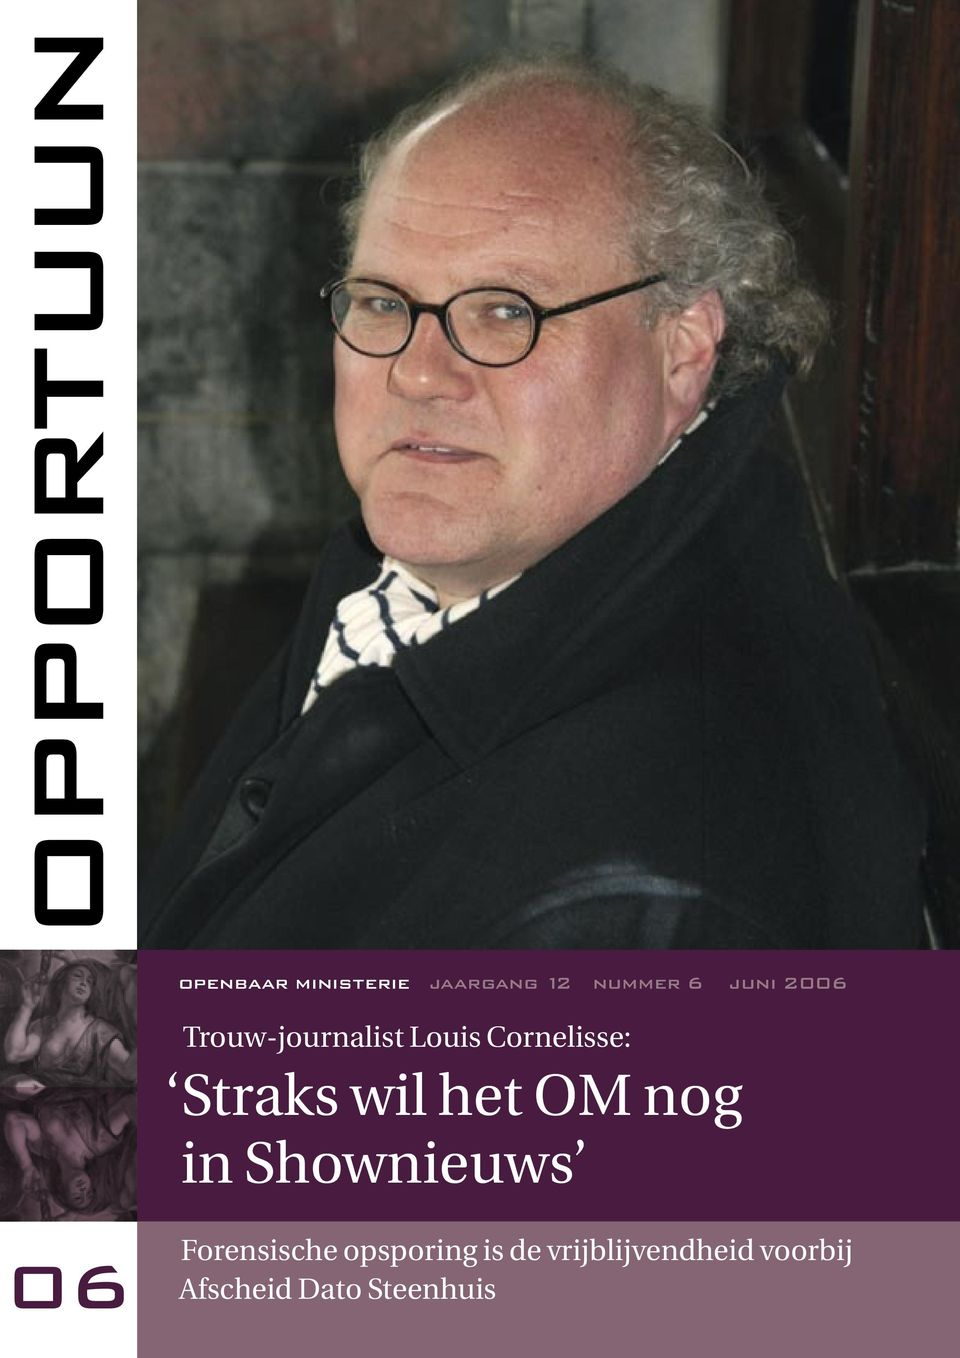 OM nog in Shownieuws 06 Forensische opsporing is